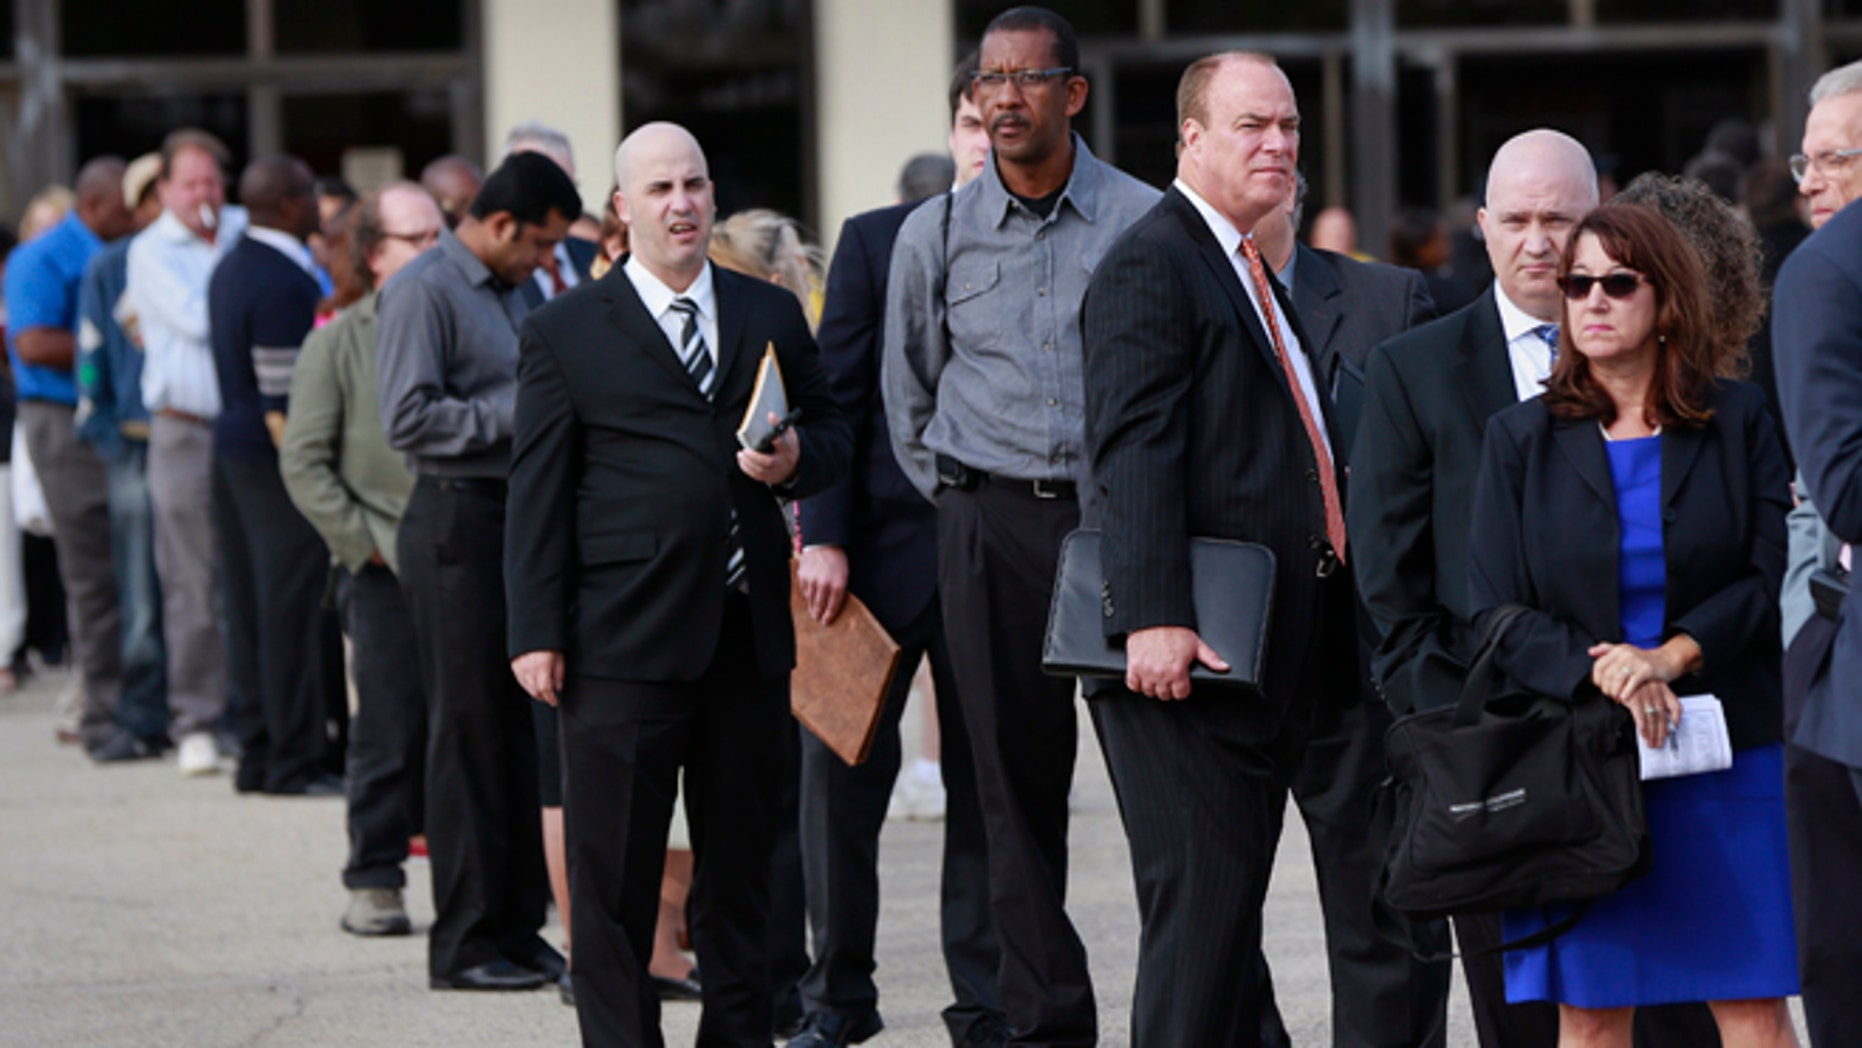 In this Oct. 7, 2014 photo, people wait in line to enter the Nassau County Mega Job Fair at Nassau Veterans Memorial Coliseum in Uniondale, New York.